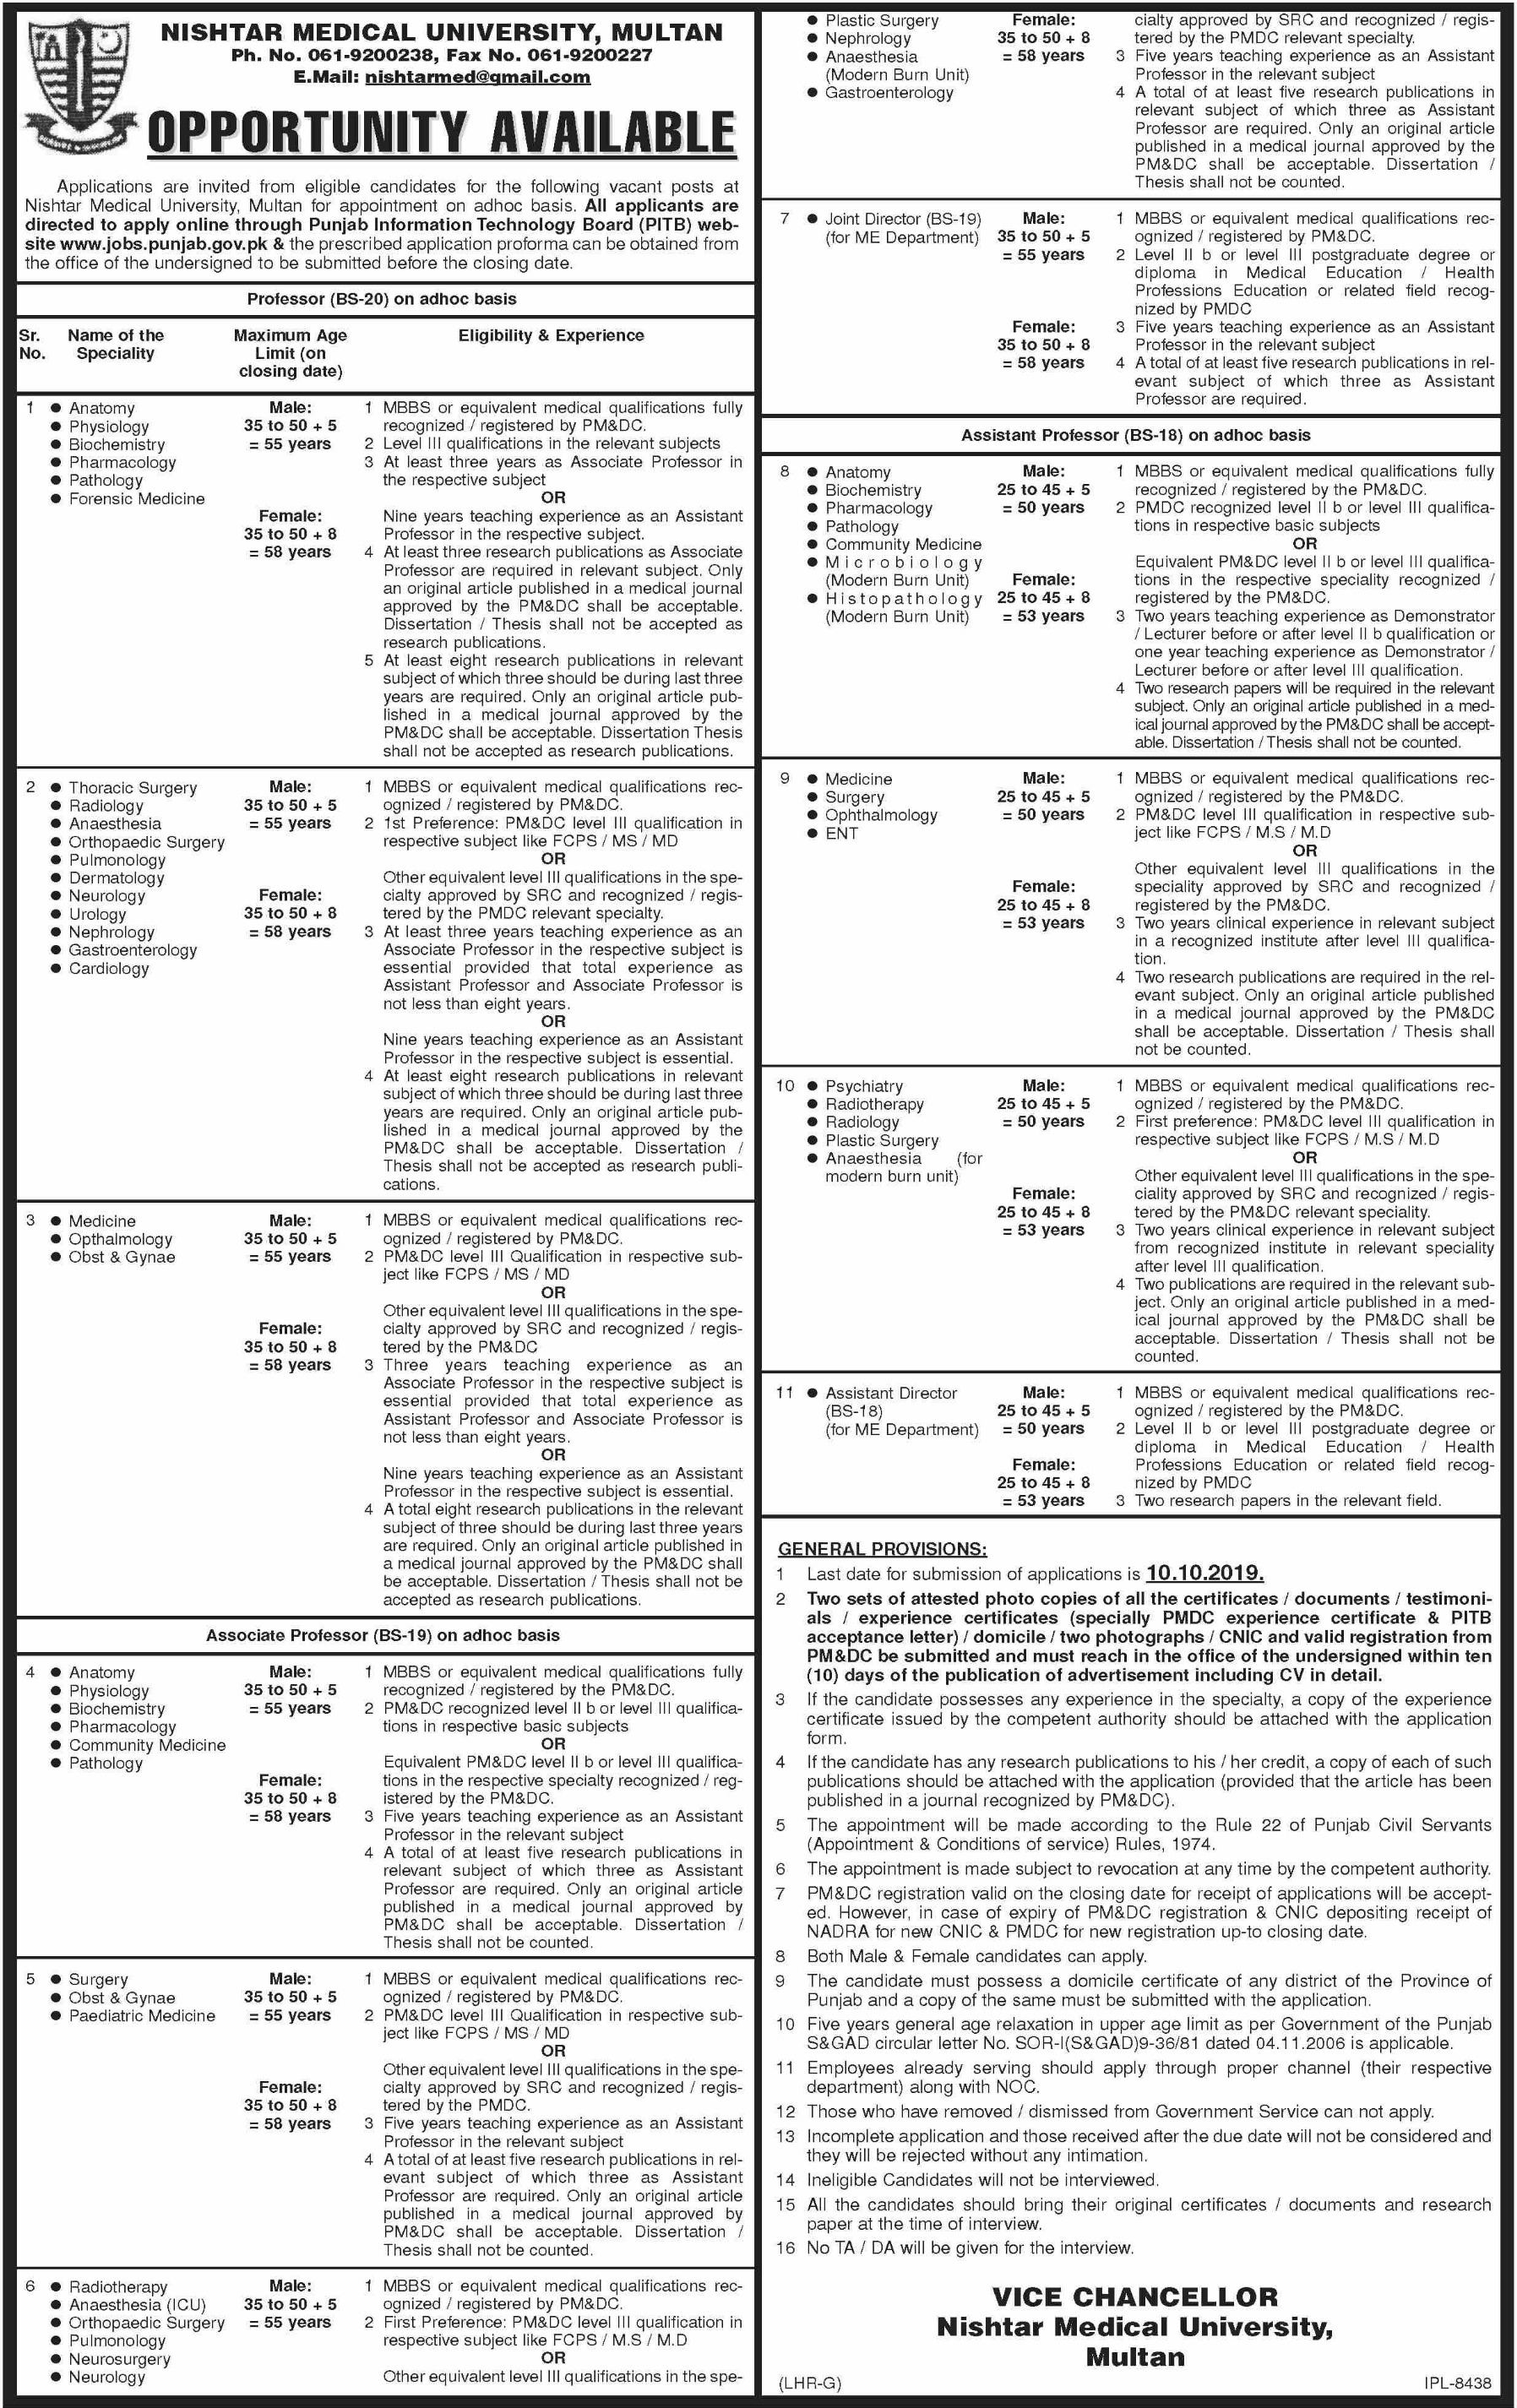 Nishtar Medical University Multan Jobs 2019 Pakistan